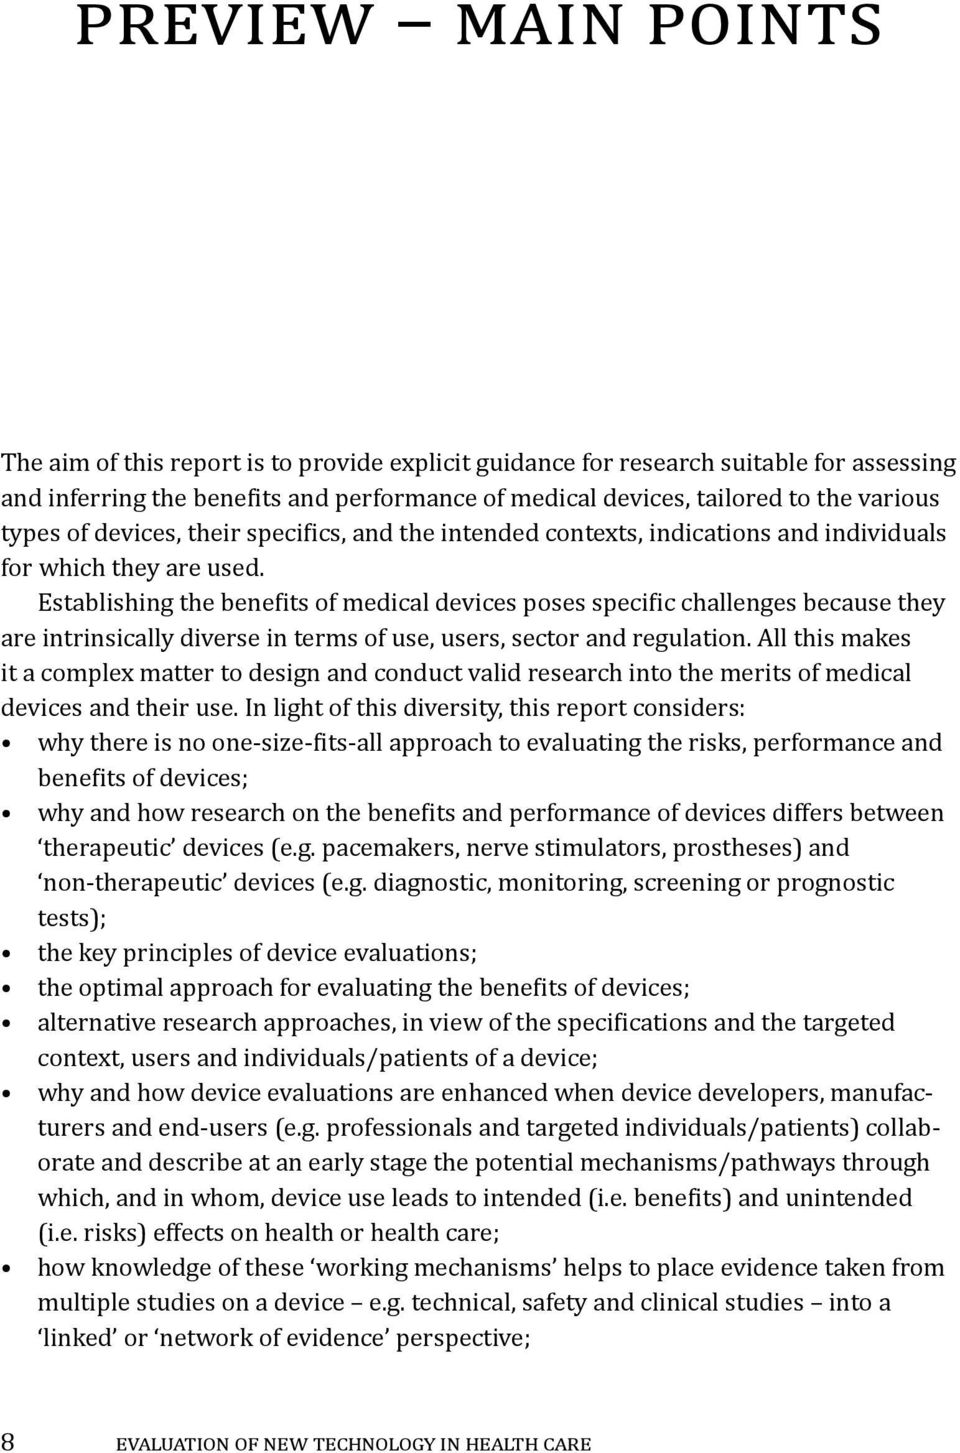 Establishing the benefits of medical devices poses specific challenges because they are intrinsically diverse in terms of use, users, sector and regulation.